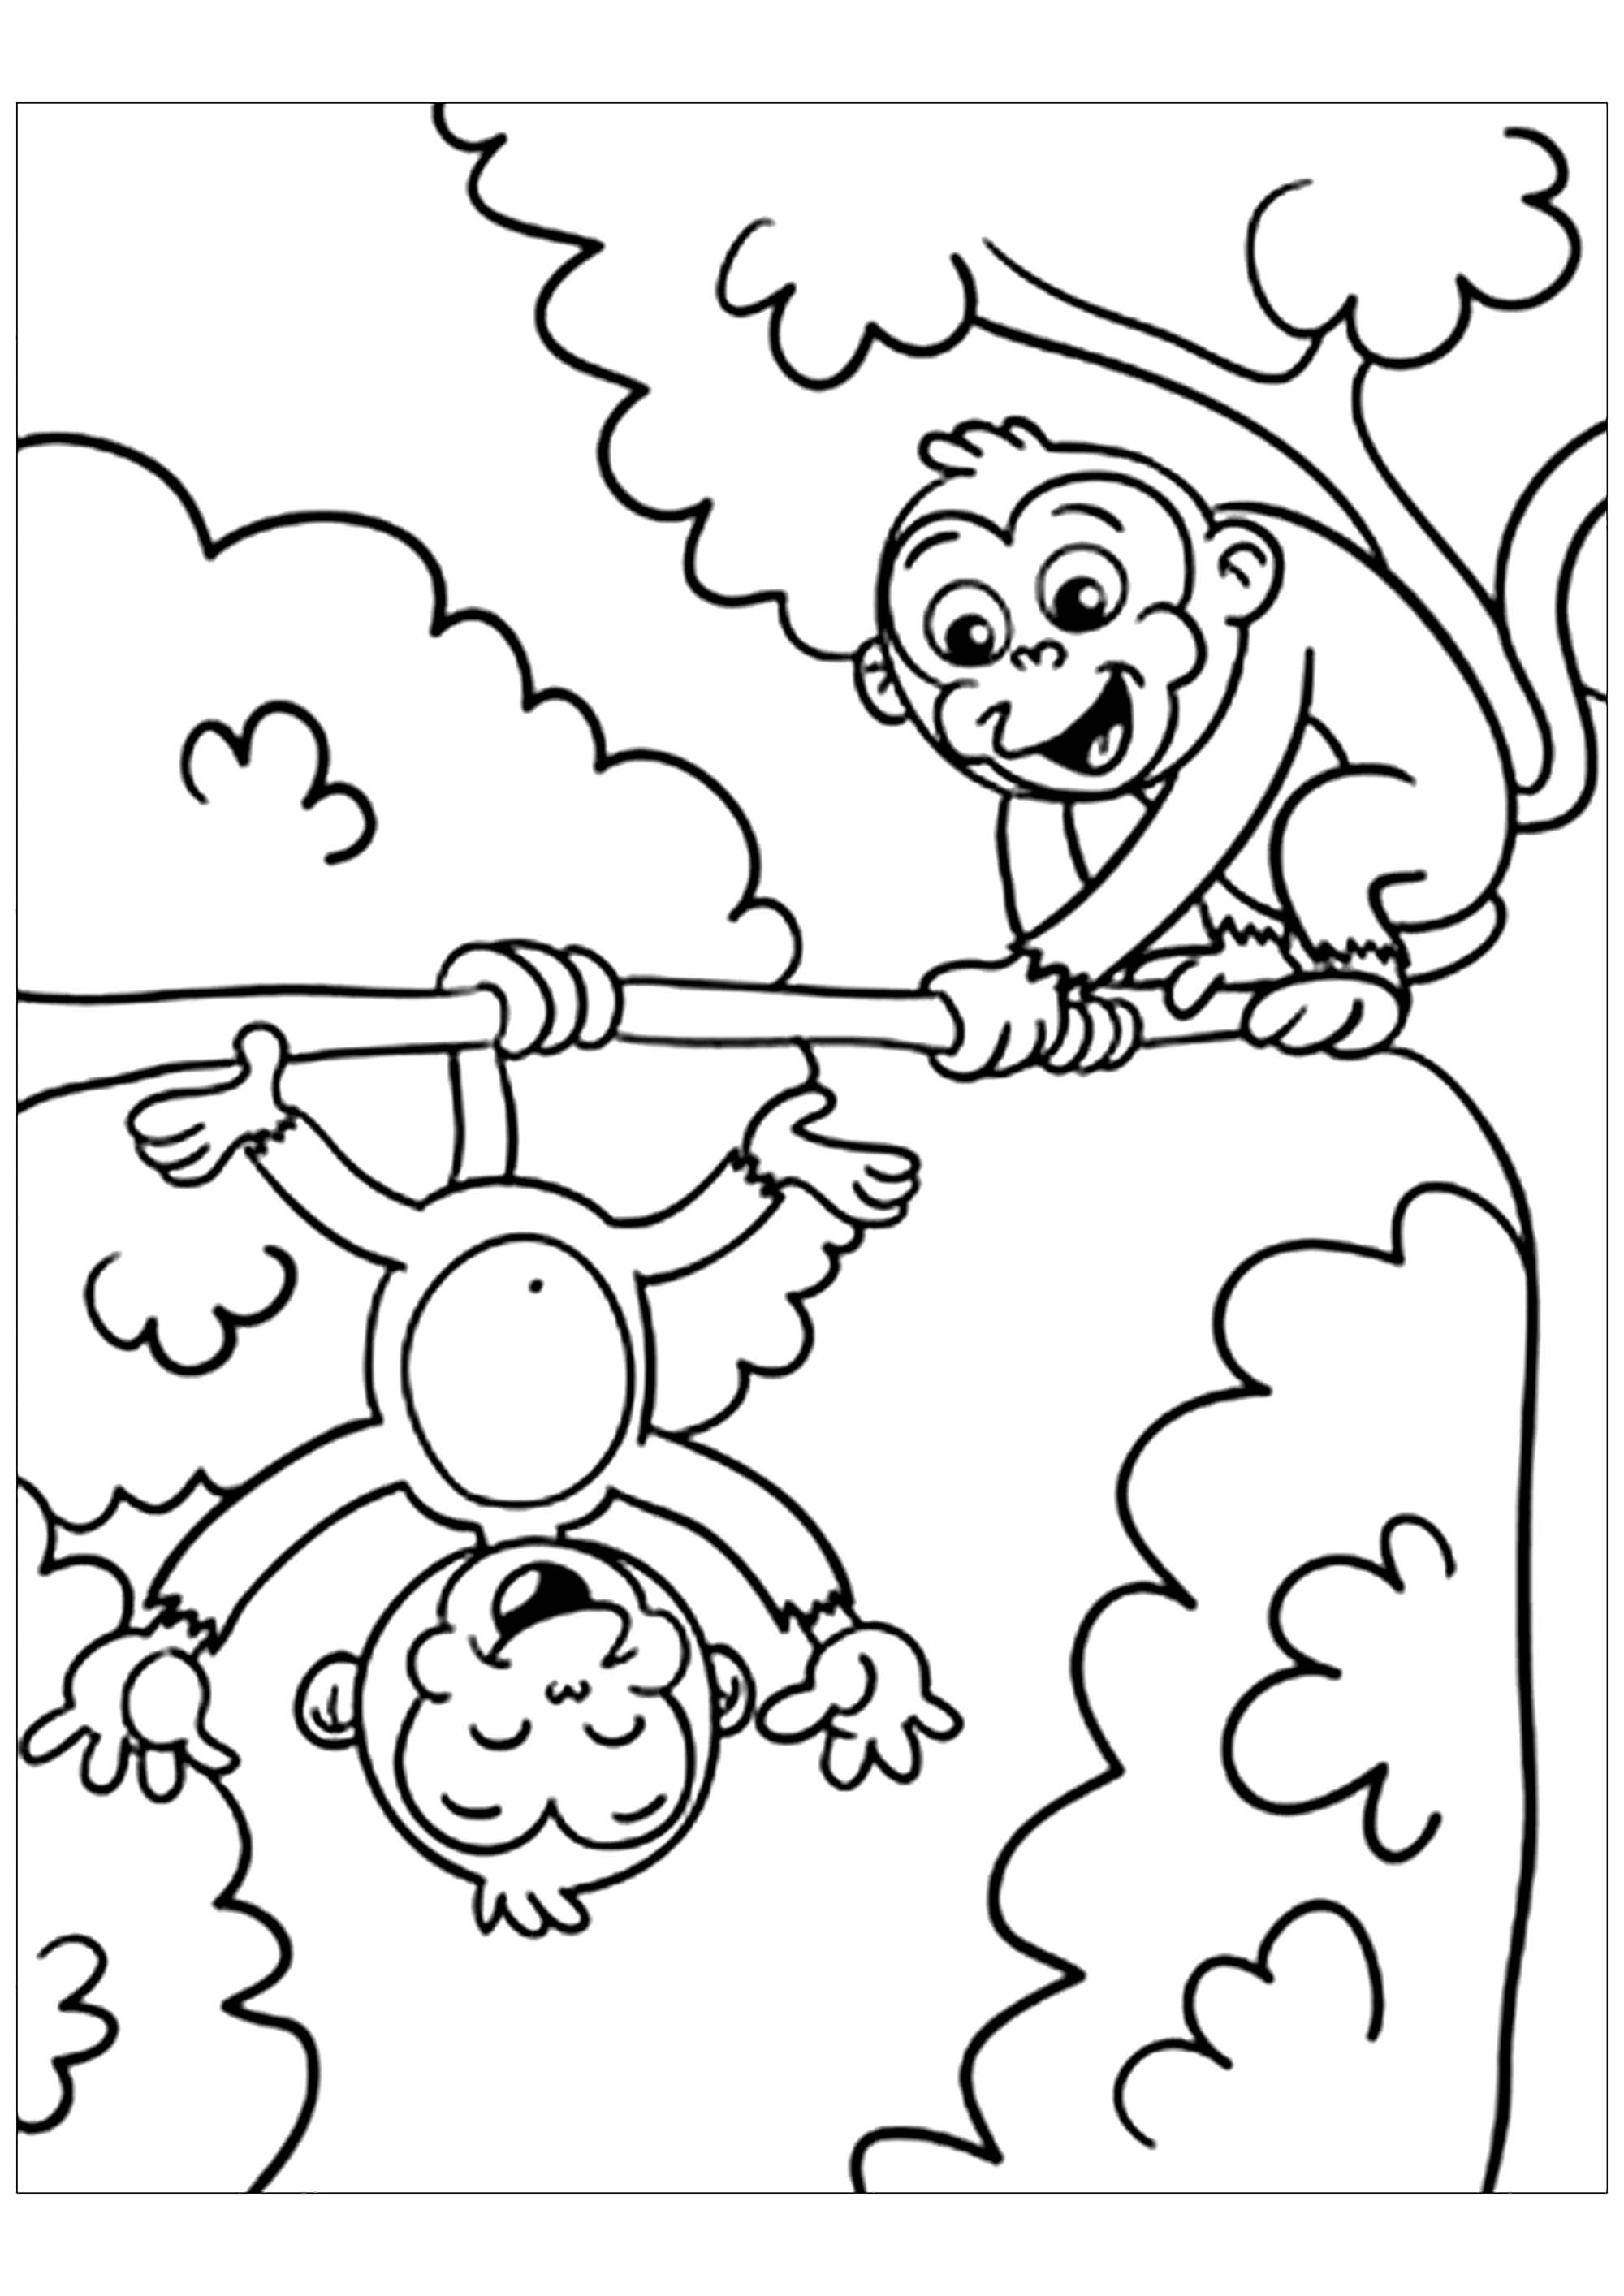 coloring picture color for kids bunny coloring pages best coloring pages for kids color kids picture for coloring